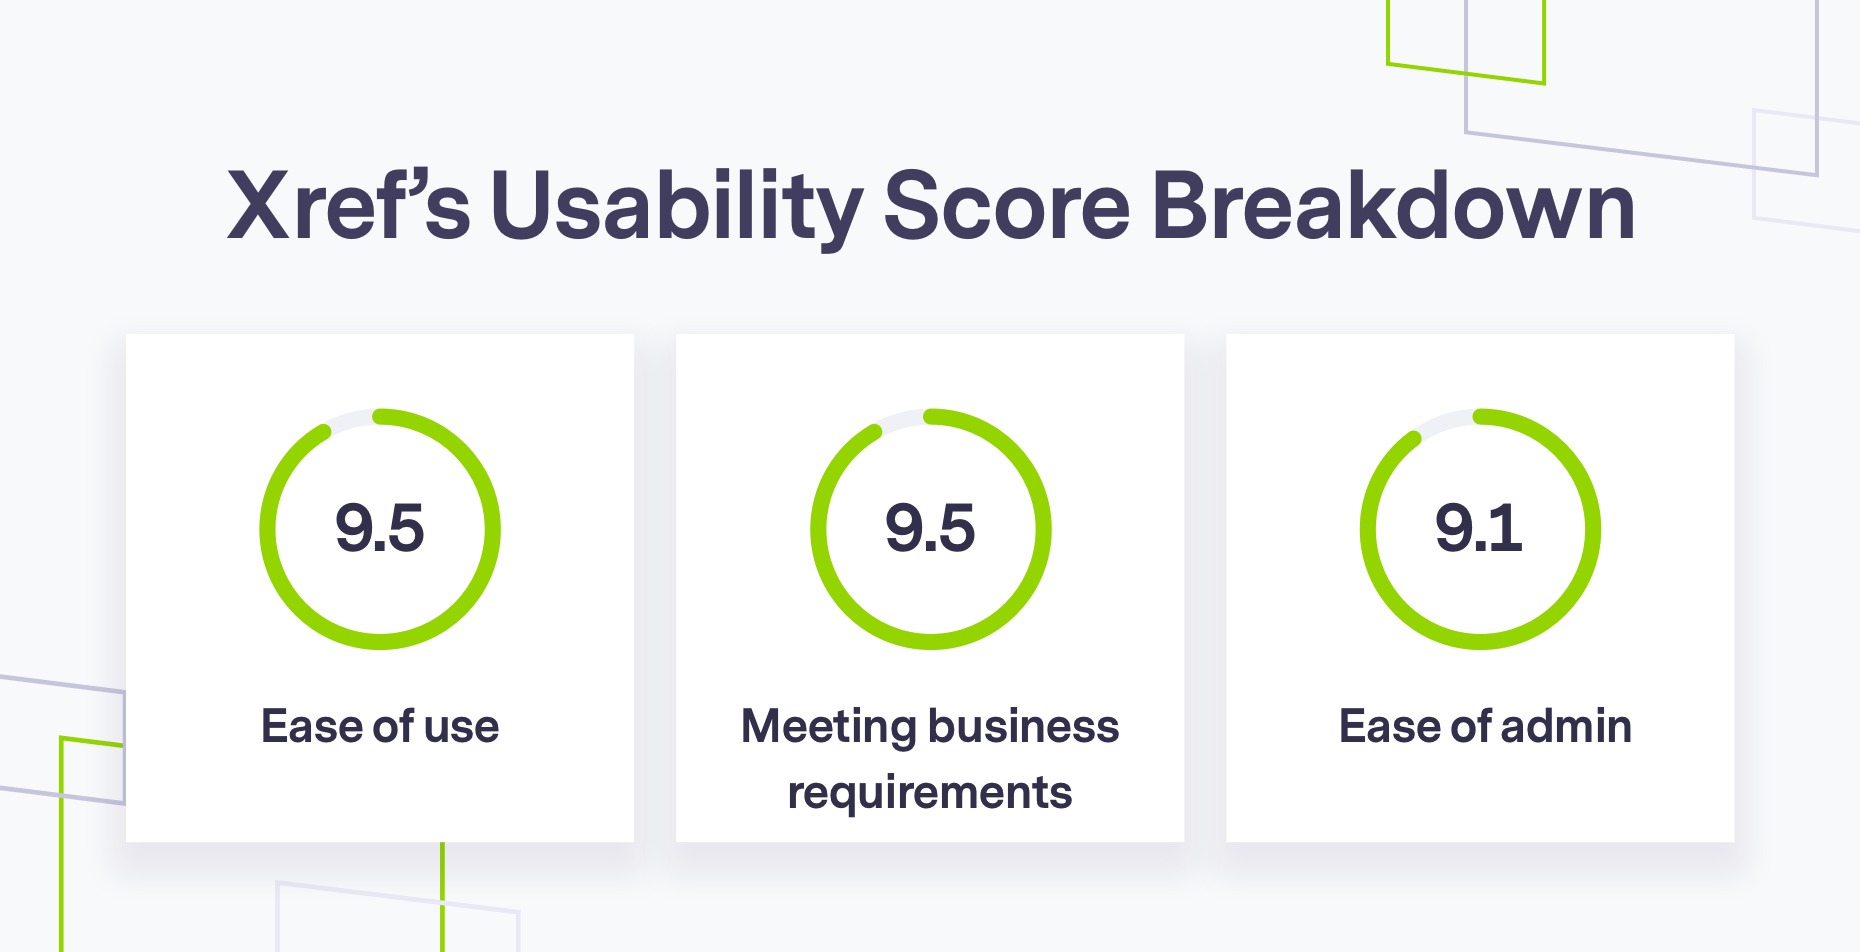 Xref usability G2 scores, brand shapes on grey